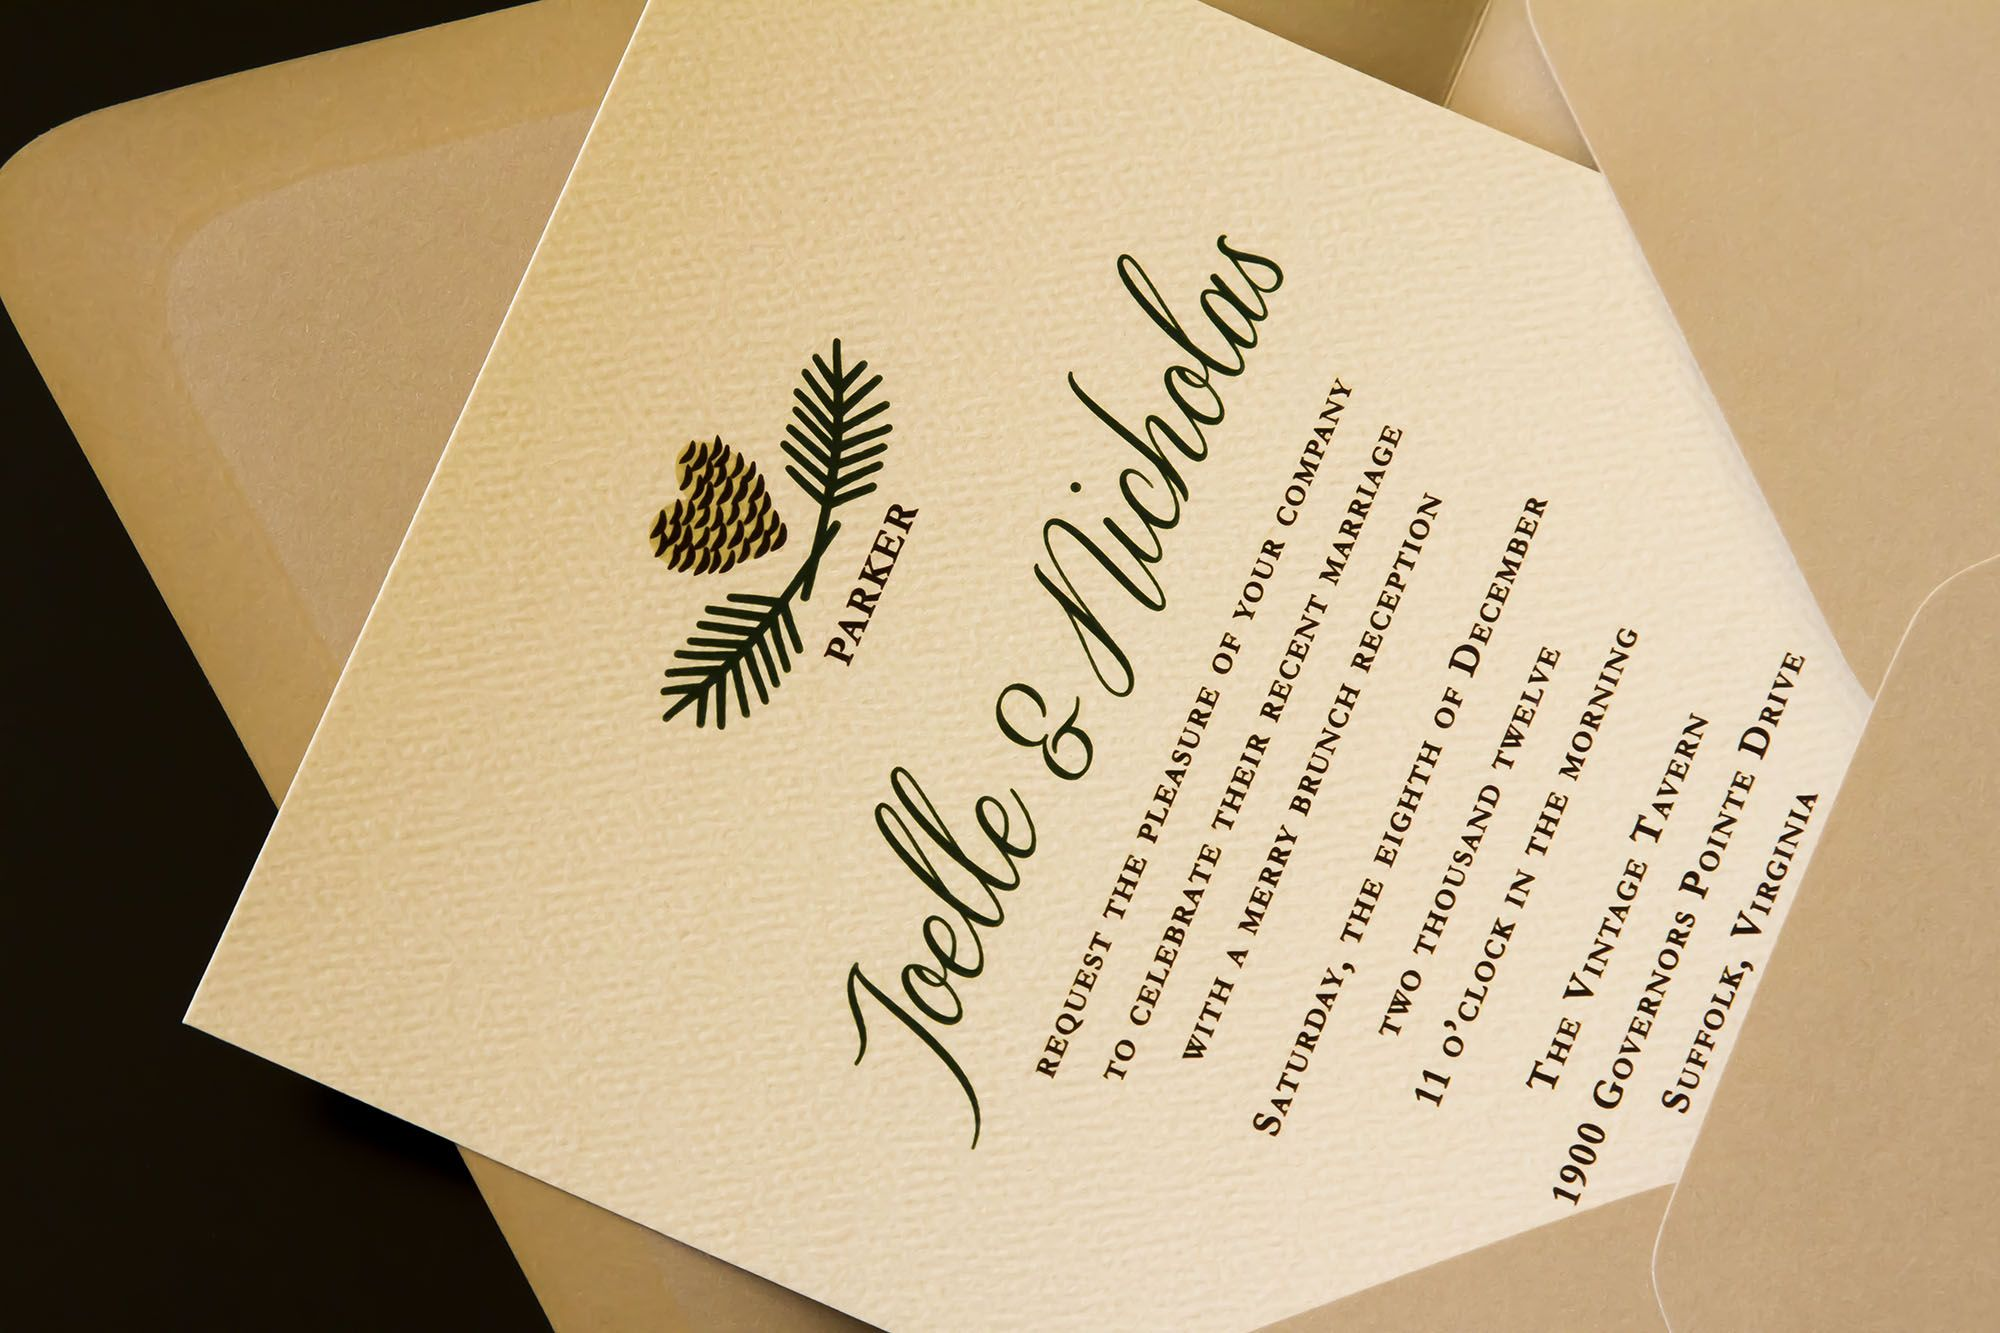 christmas wedding invitations For a Suffolk style shoot The Girl Tyler created a custom wedding invitation suite featuring winter green text on linen paper with pine cone accents